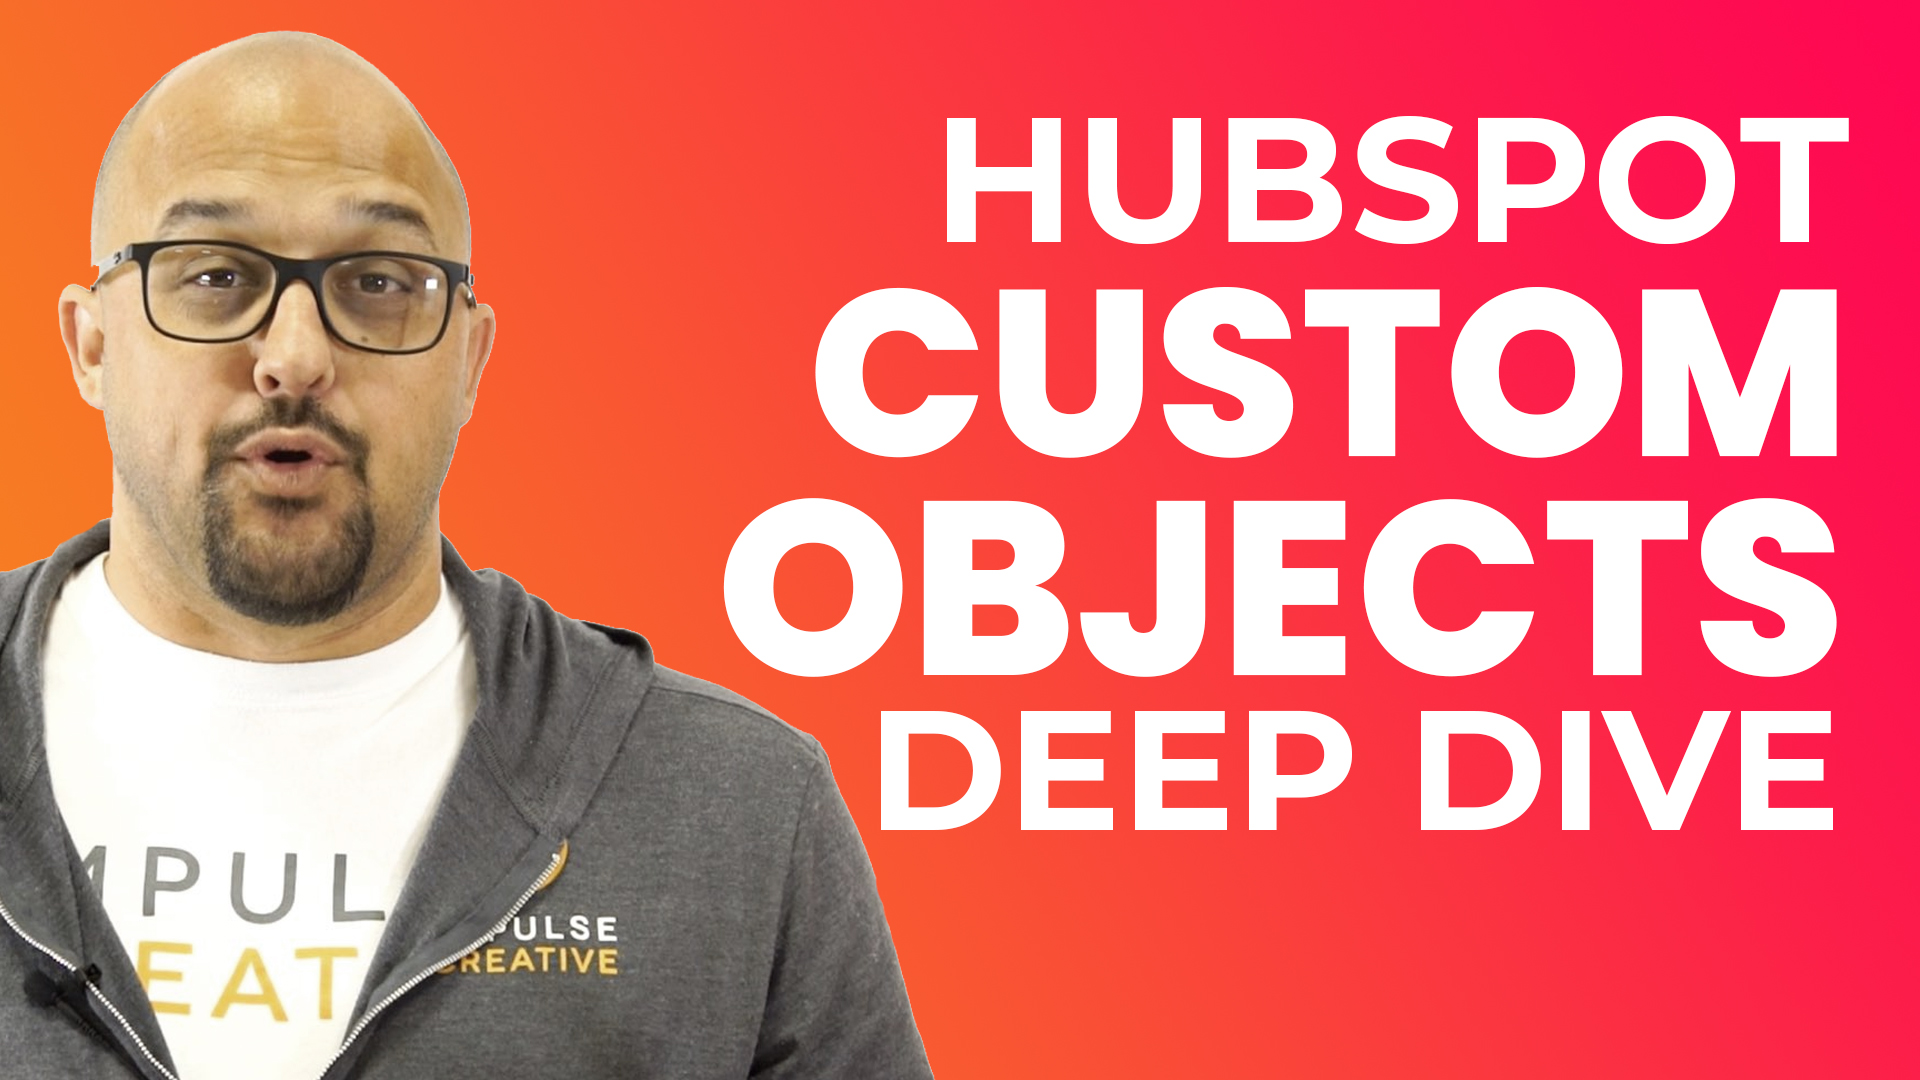 IC - HubSpot Custom Object Deep Dive